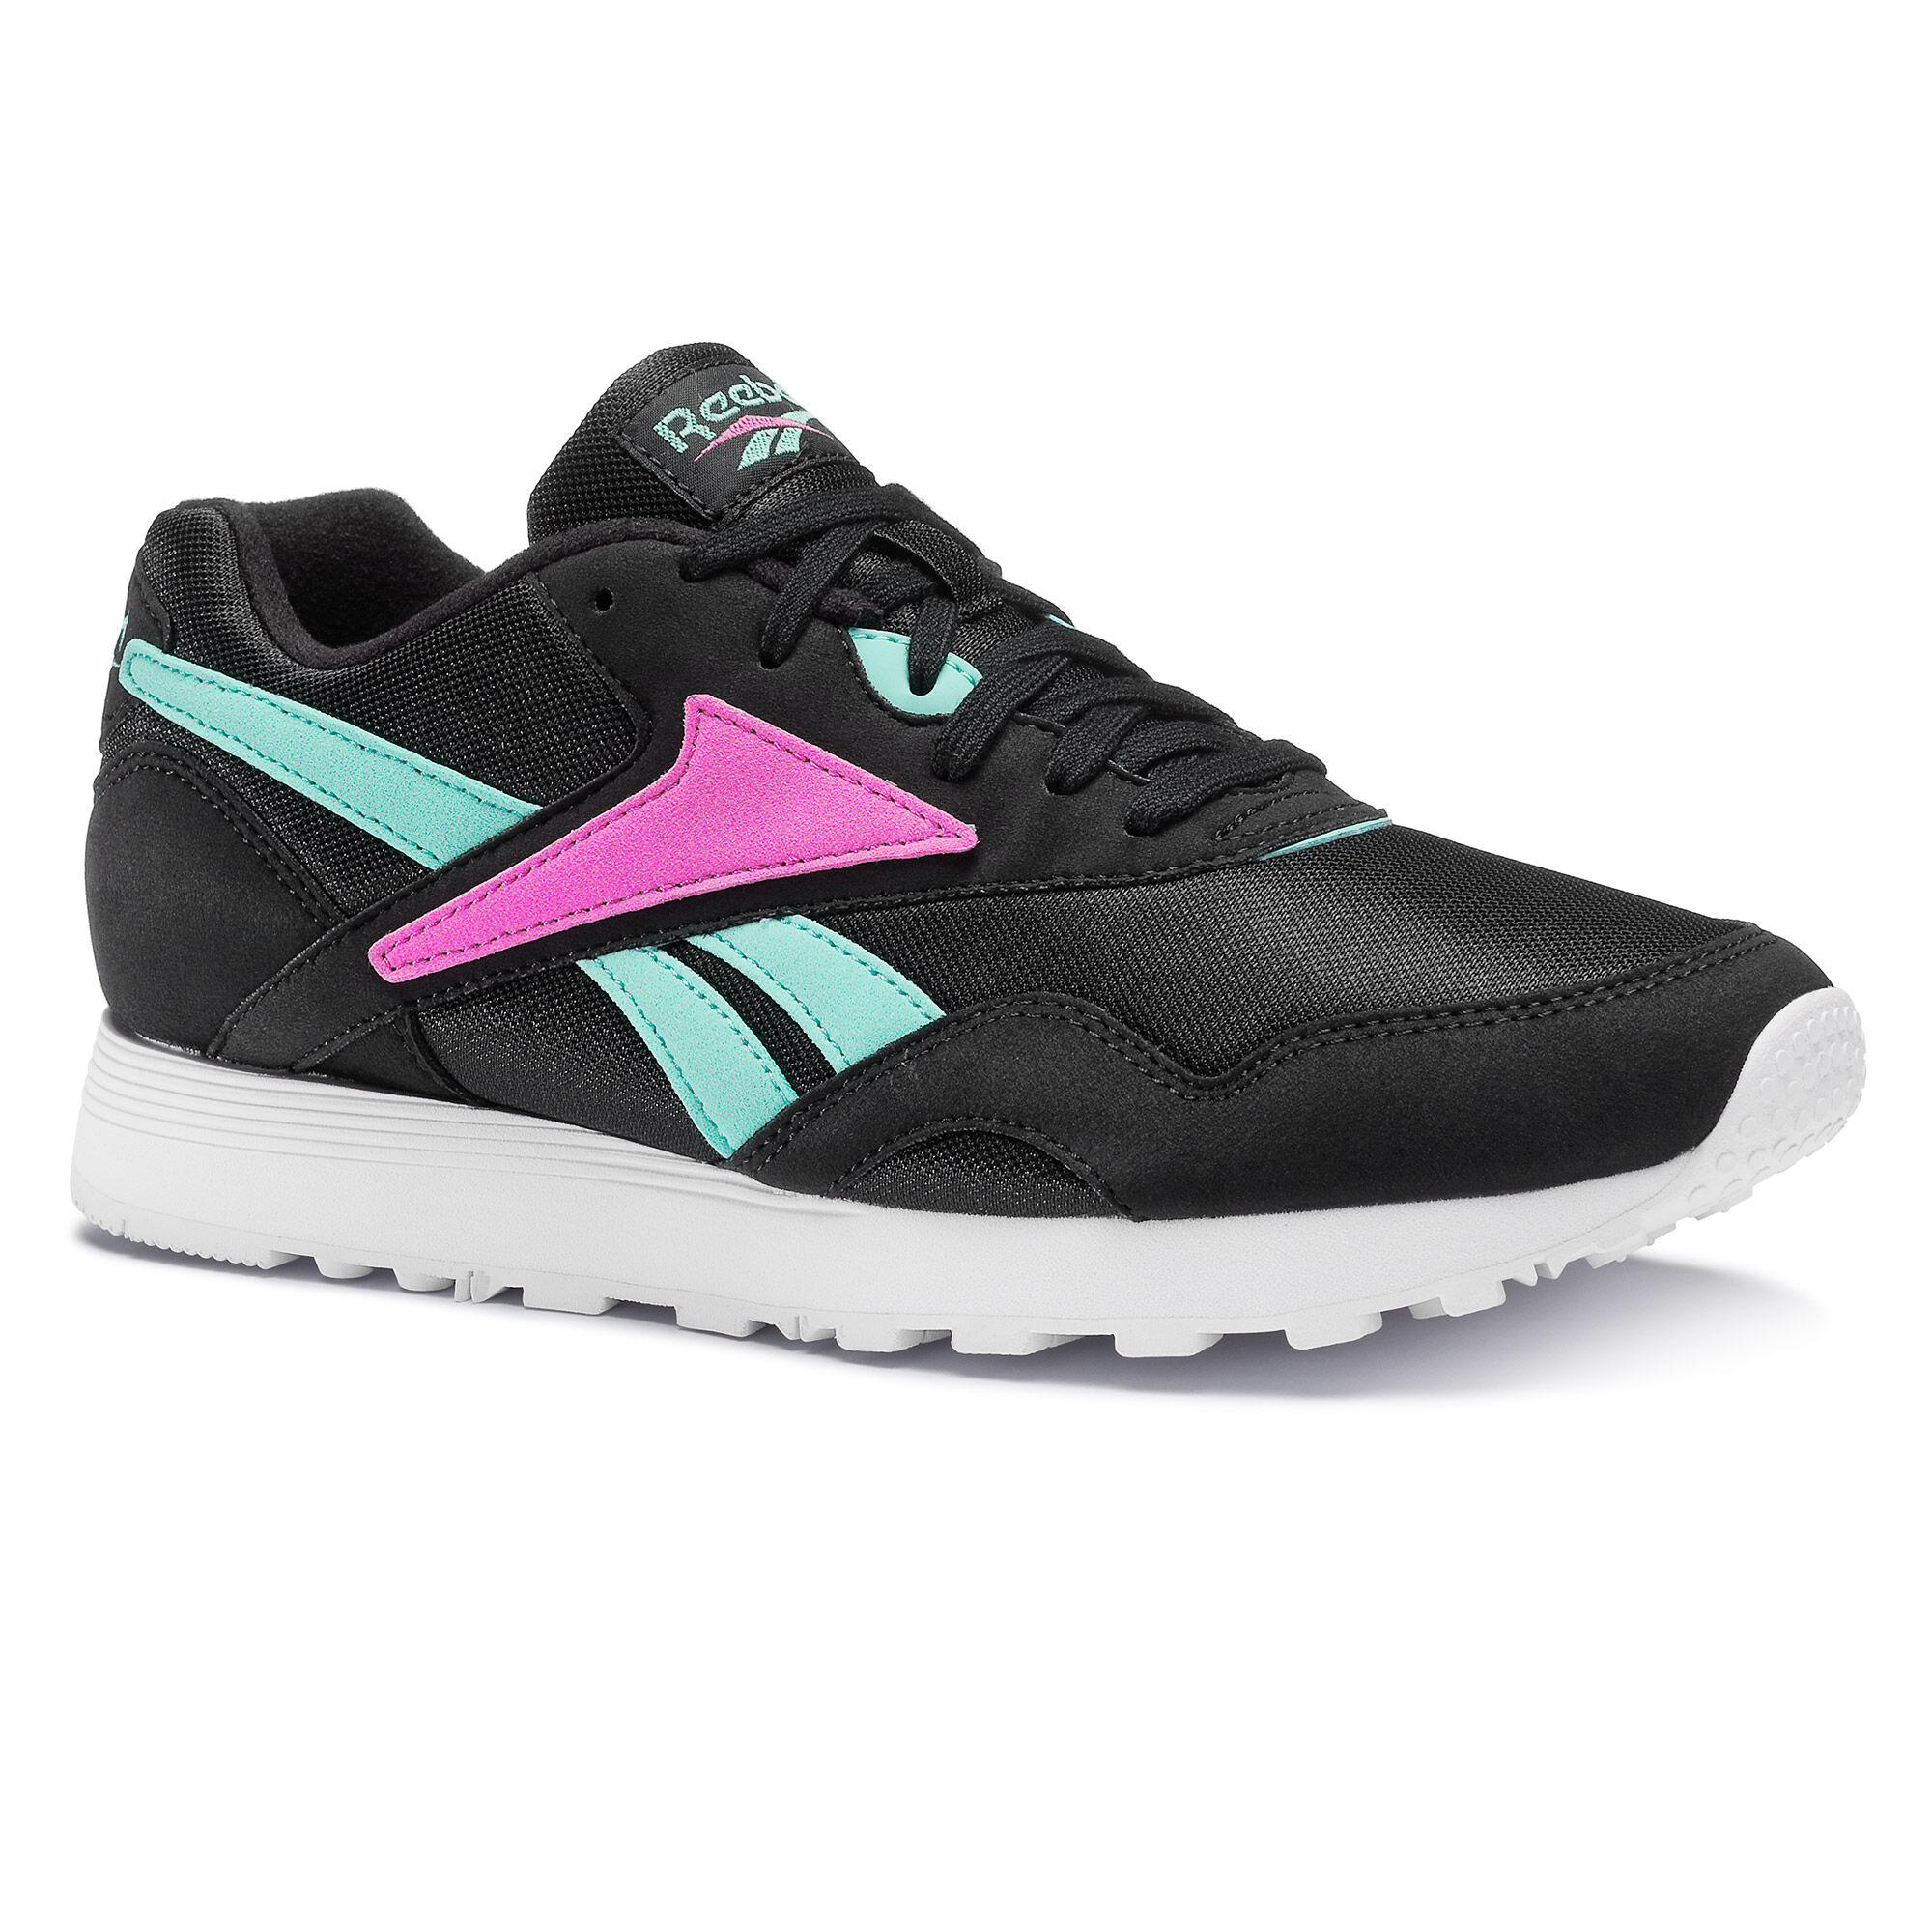 best seller for sale cheap sale lowest price Reebok Rapide OG Trainers In Black CN6003 cheap sale visit dH7gqZ